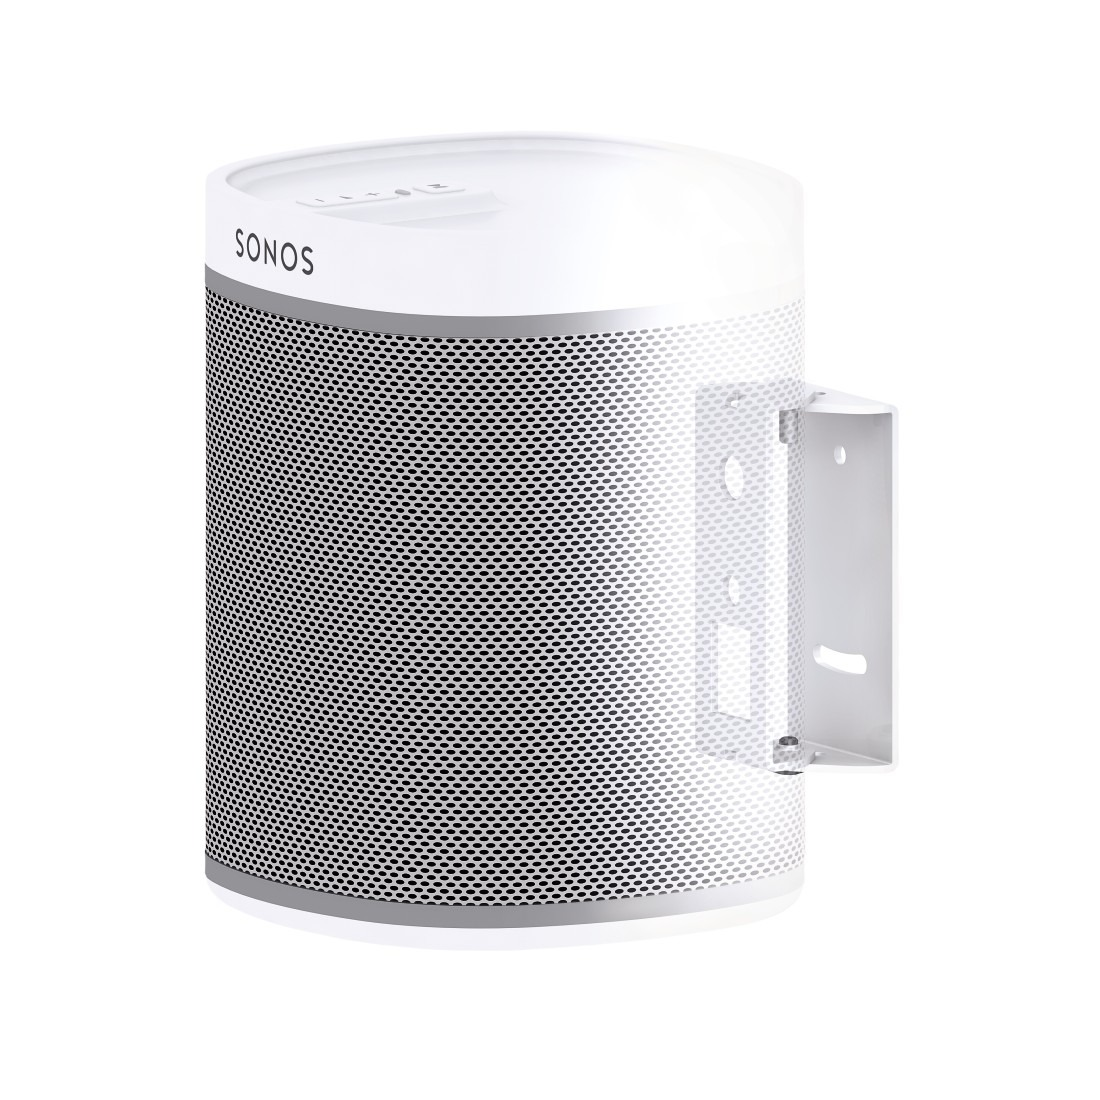 Hama audio muurbeugel Muurbevestiging voor Sonos PLAY1 swivel wit